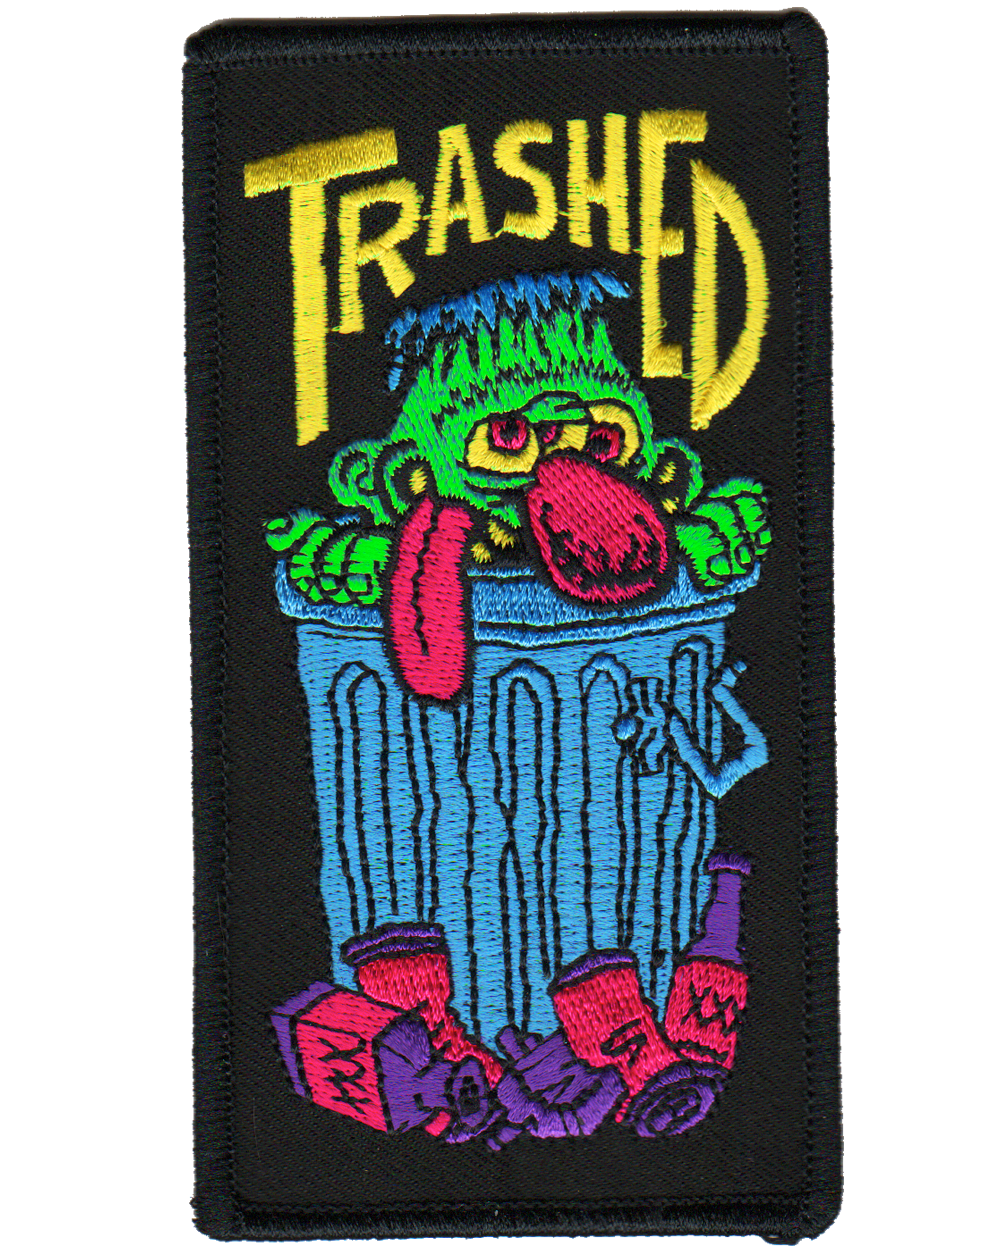 Trashed Patch!